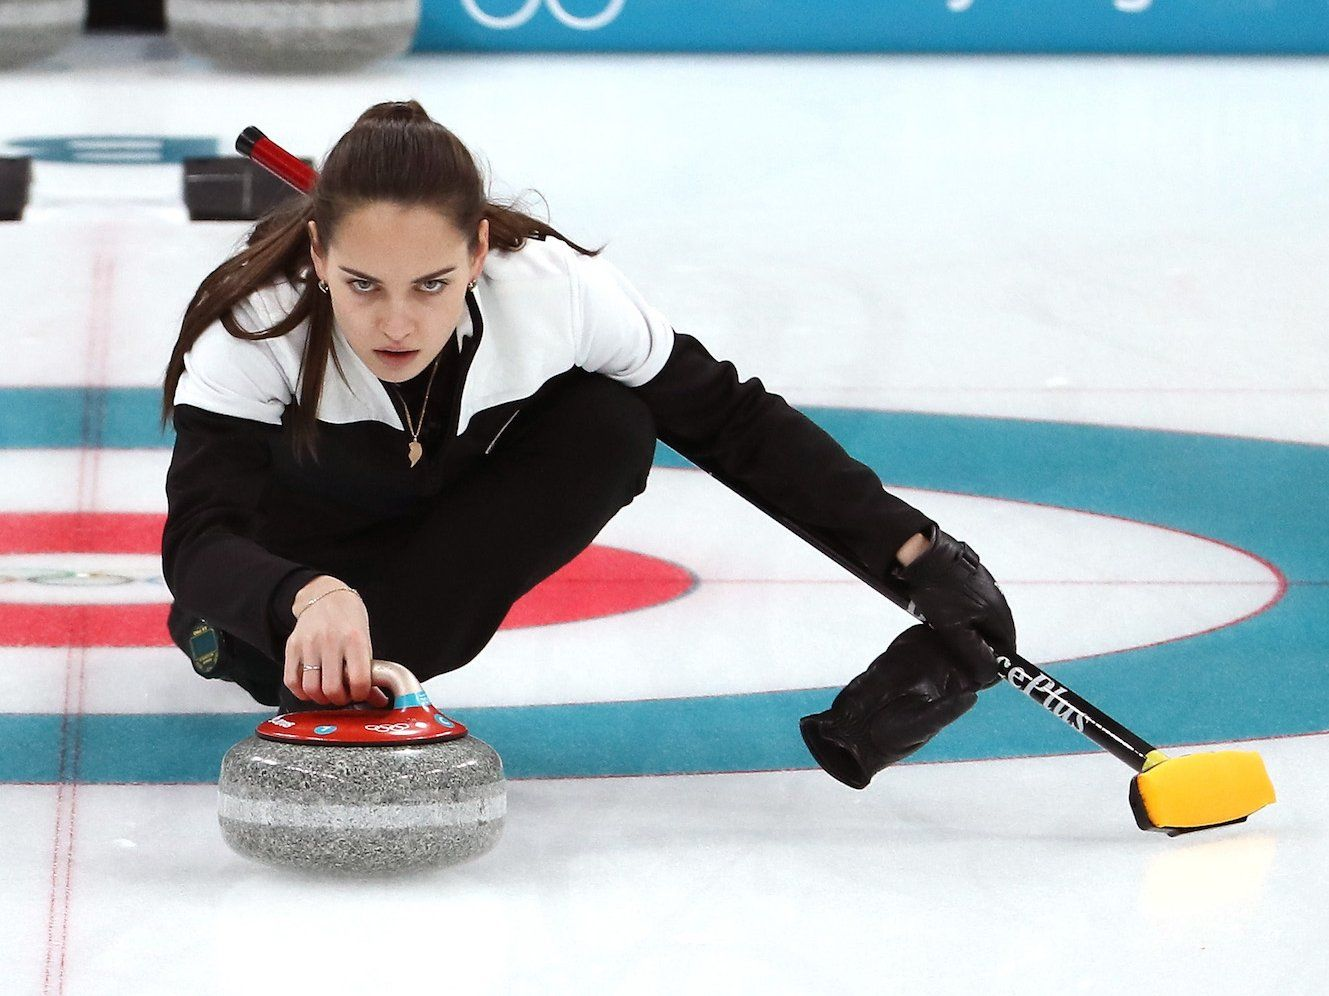 Russian curling athlete falls on ice at Winter Olympics